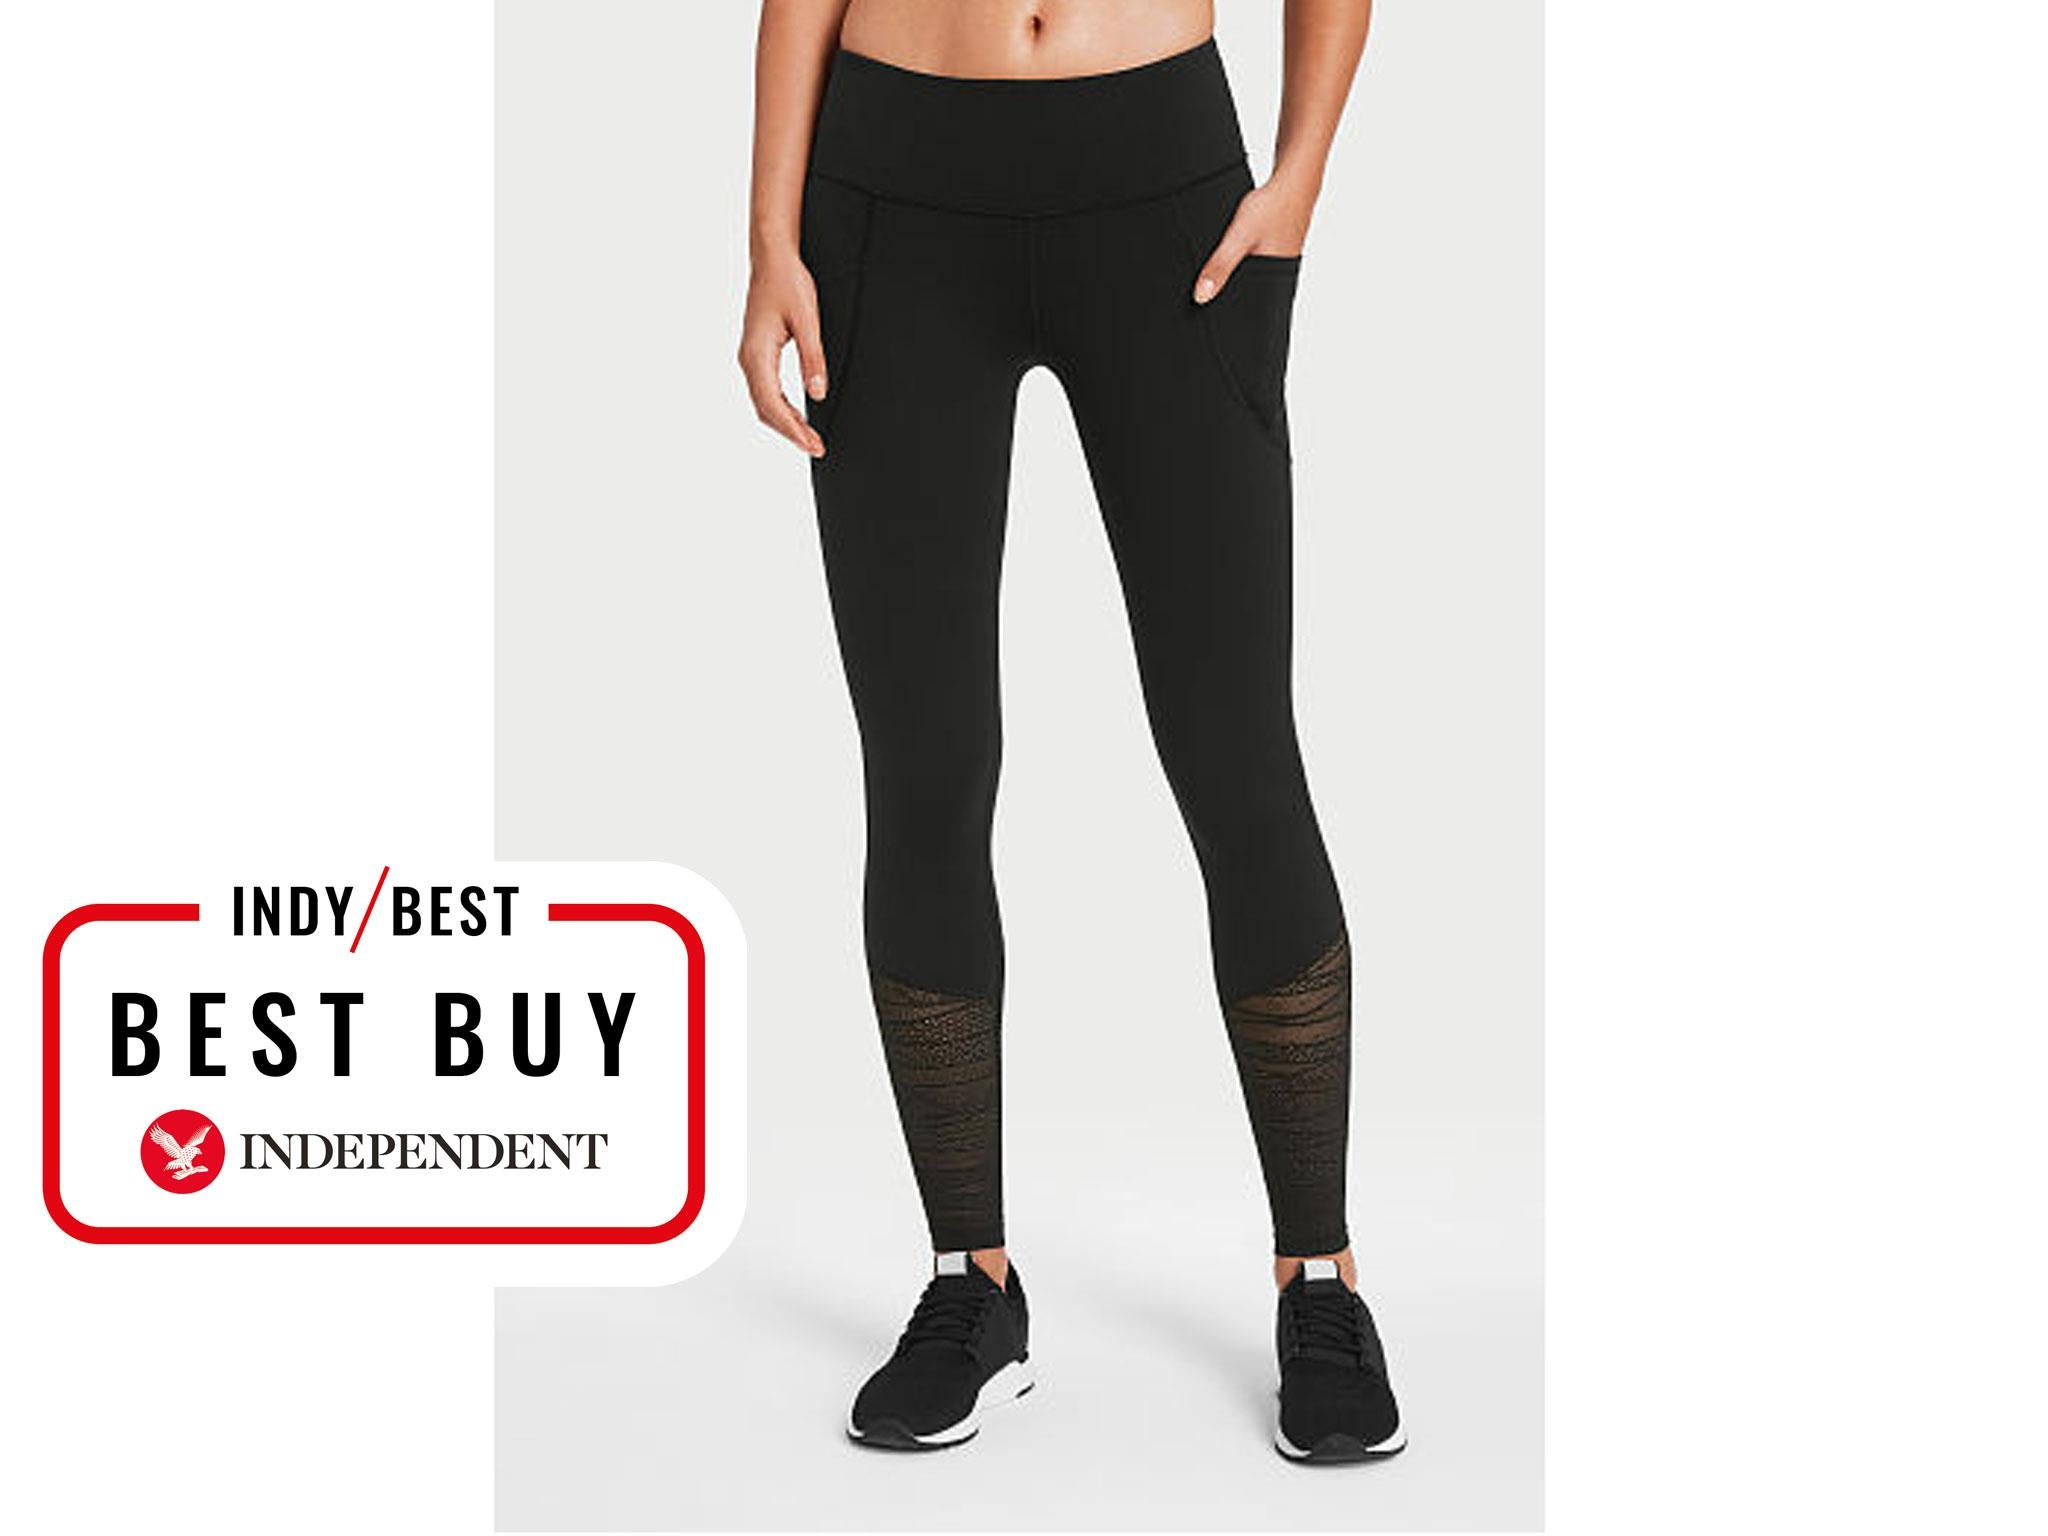 adb2f0b28355d Victoria's Secret Knockout Leggings: £68.43, Victoria's Secret. These gym  leggings ...